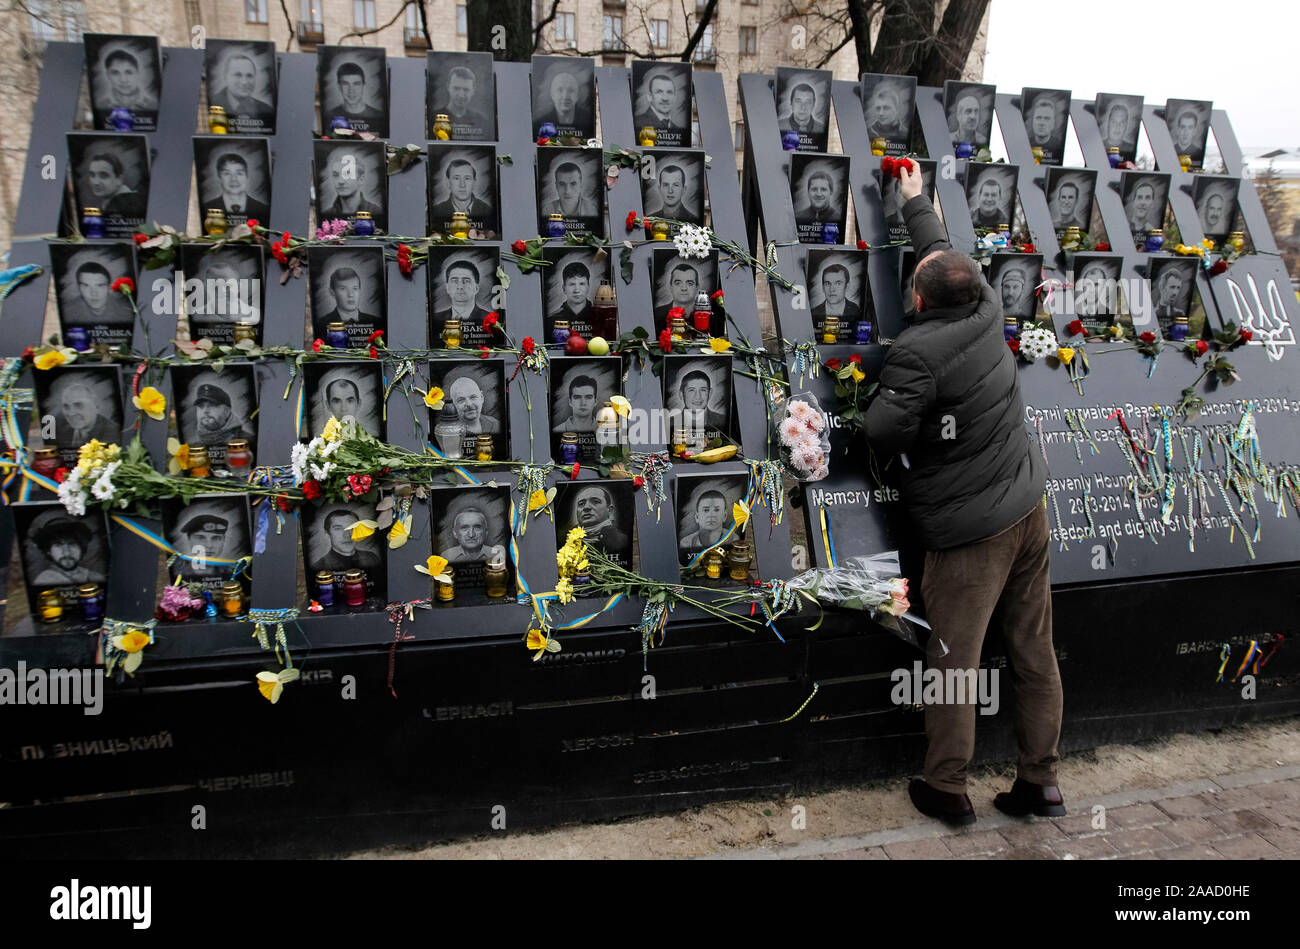 A man lays flowers to the memorial of dead Maidan activists (Heroes of the Heavenly Hundred) during the anniversary in Kiev.Ukrainians mark the 6th anniversary of the beginning of the Revolution of Dignity or the Euromaidan Revolution in which more than hundred anti-government protesters died. Stock Photo